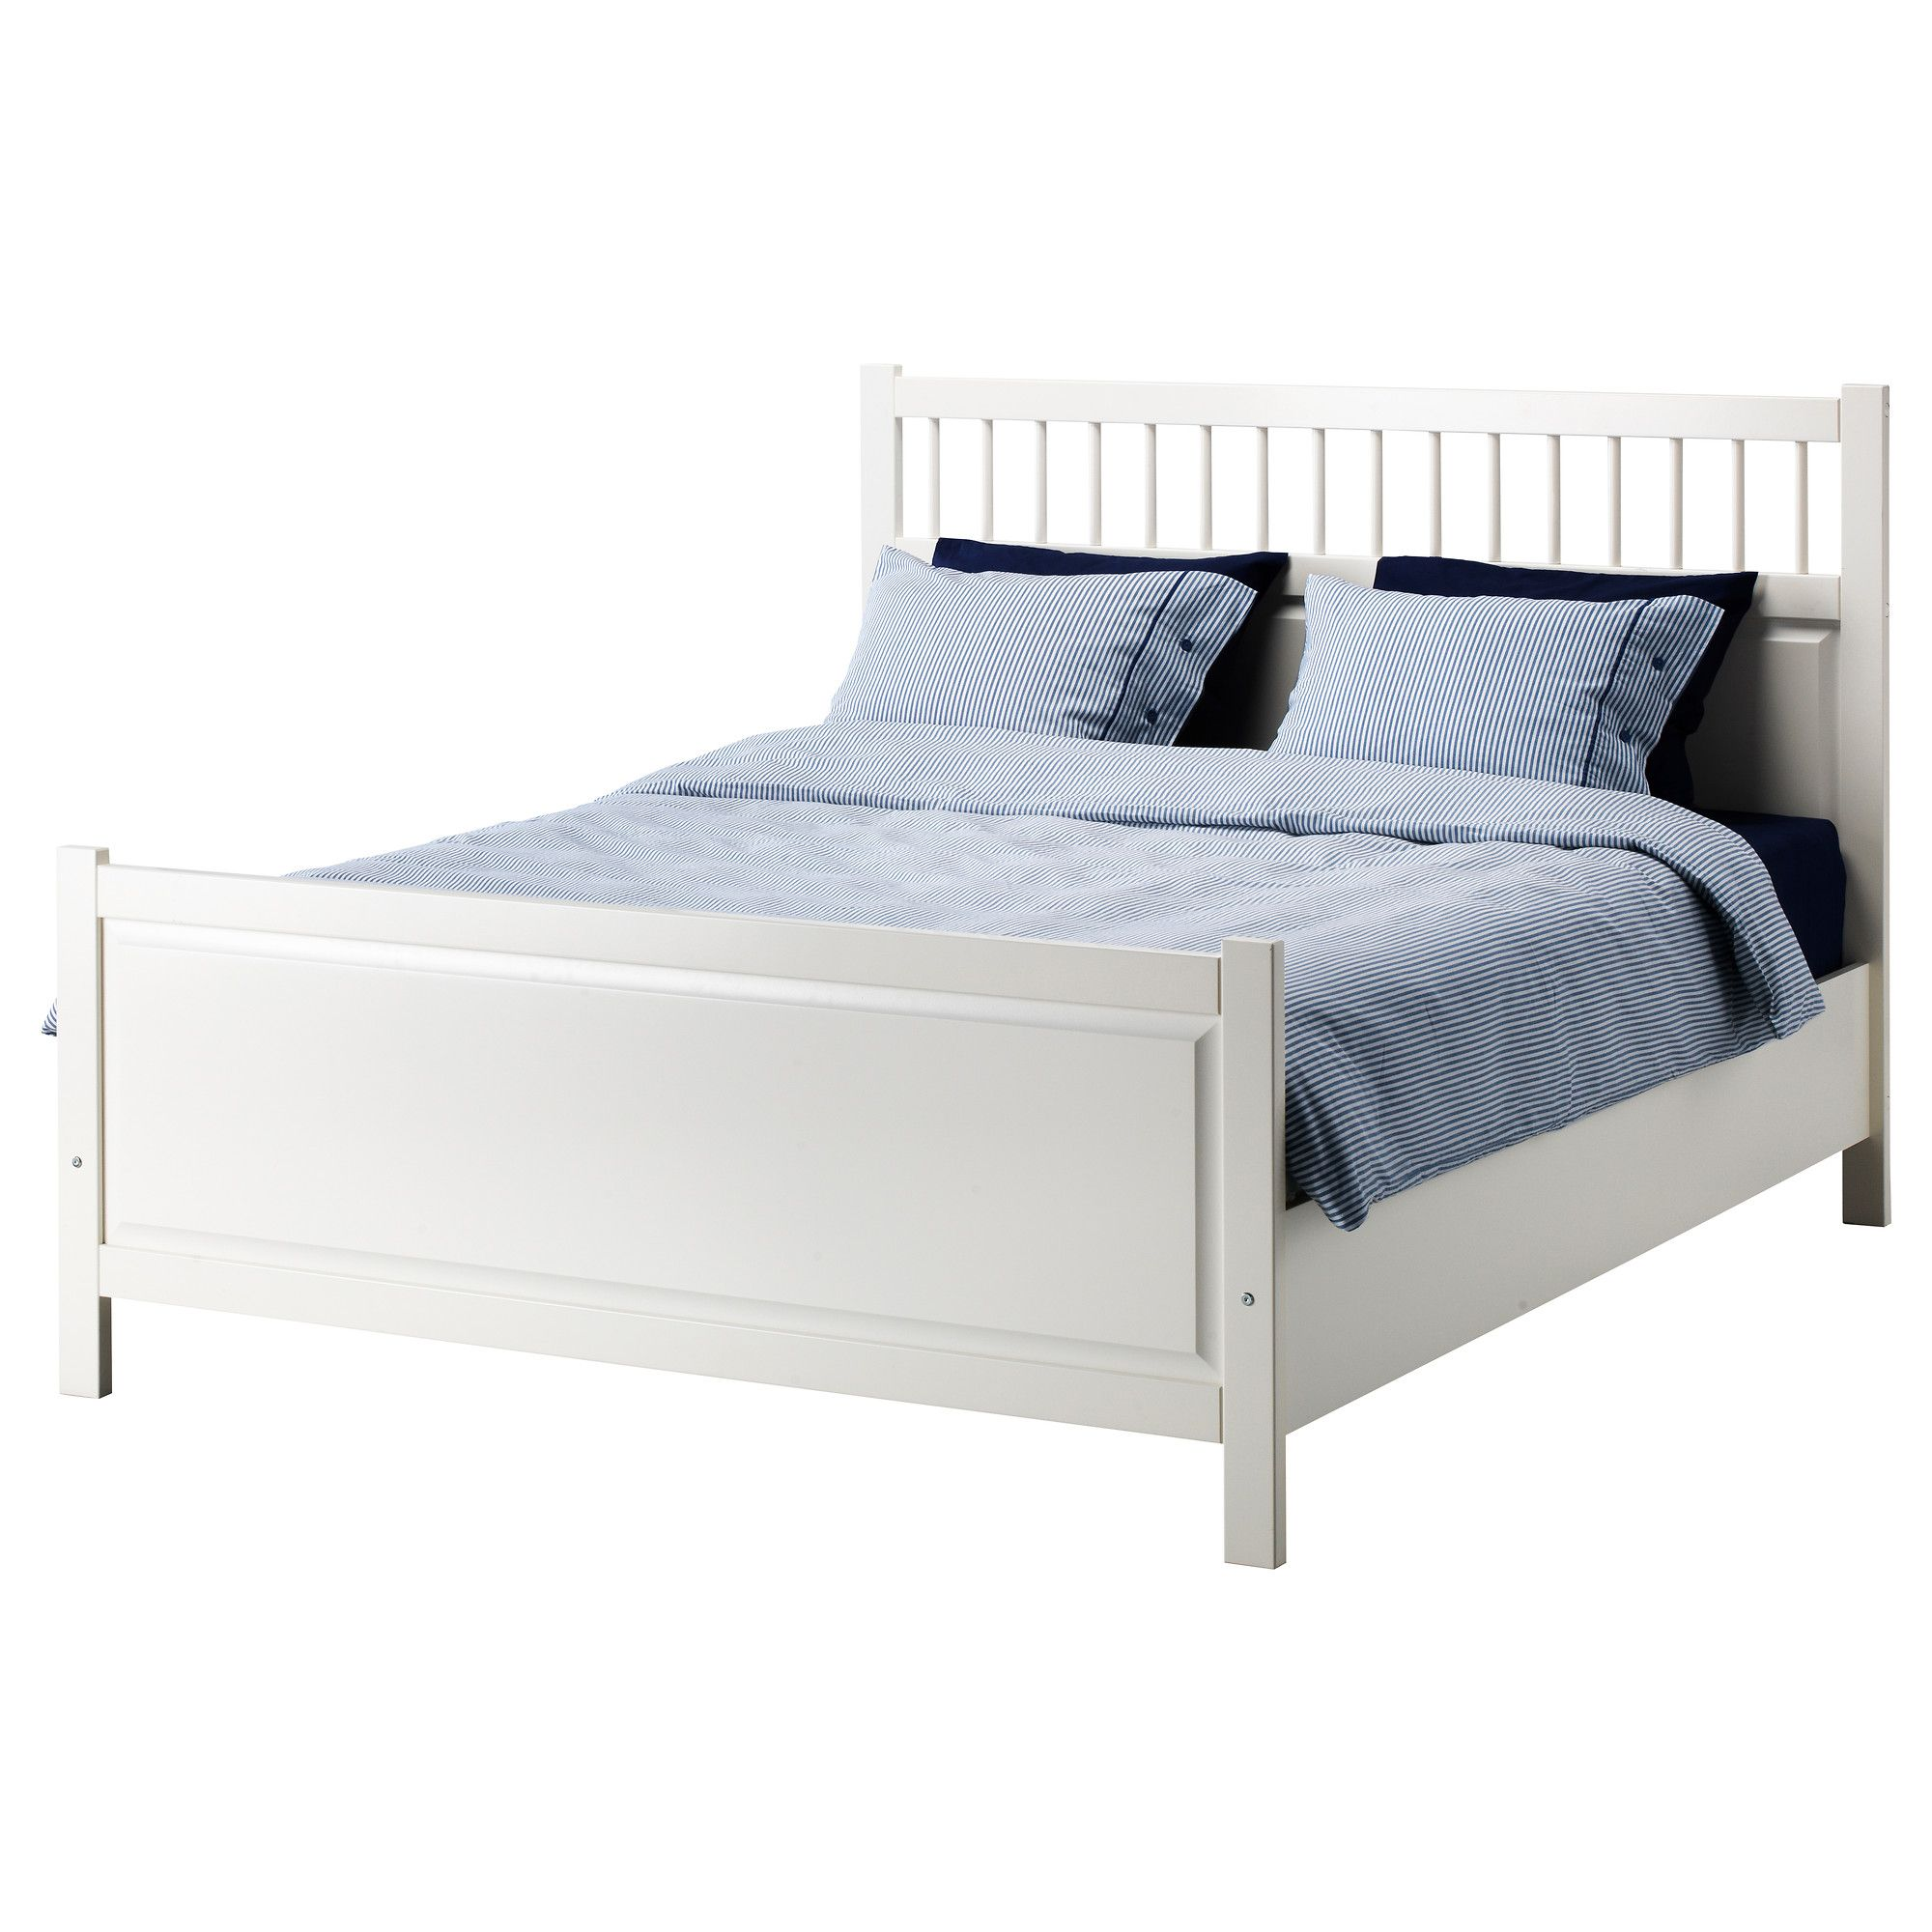 hemnes structure lit deux places ikea - Ikea Full Bed Frame